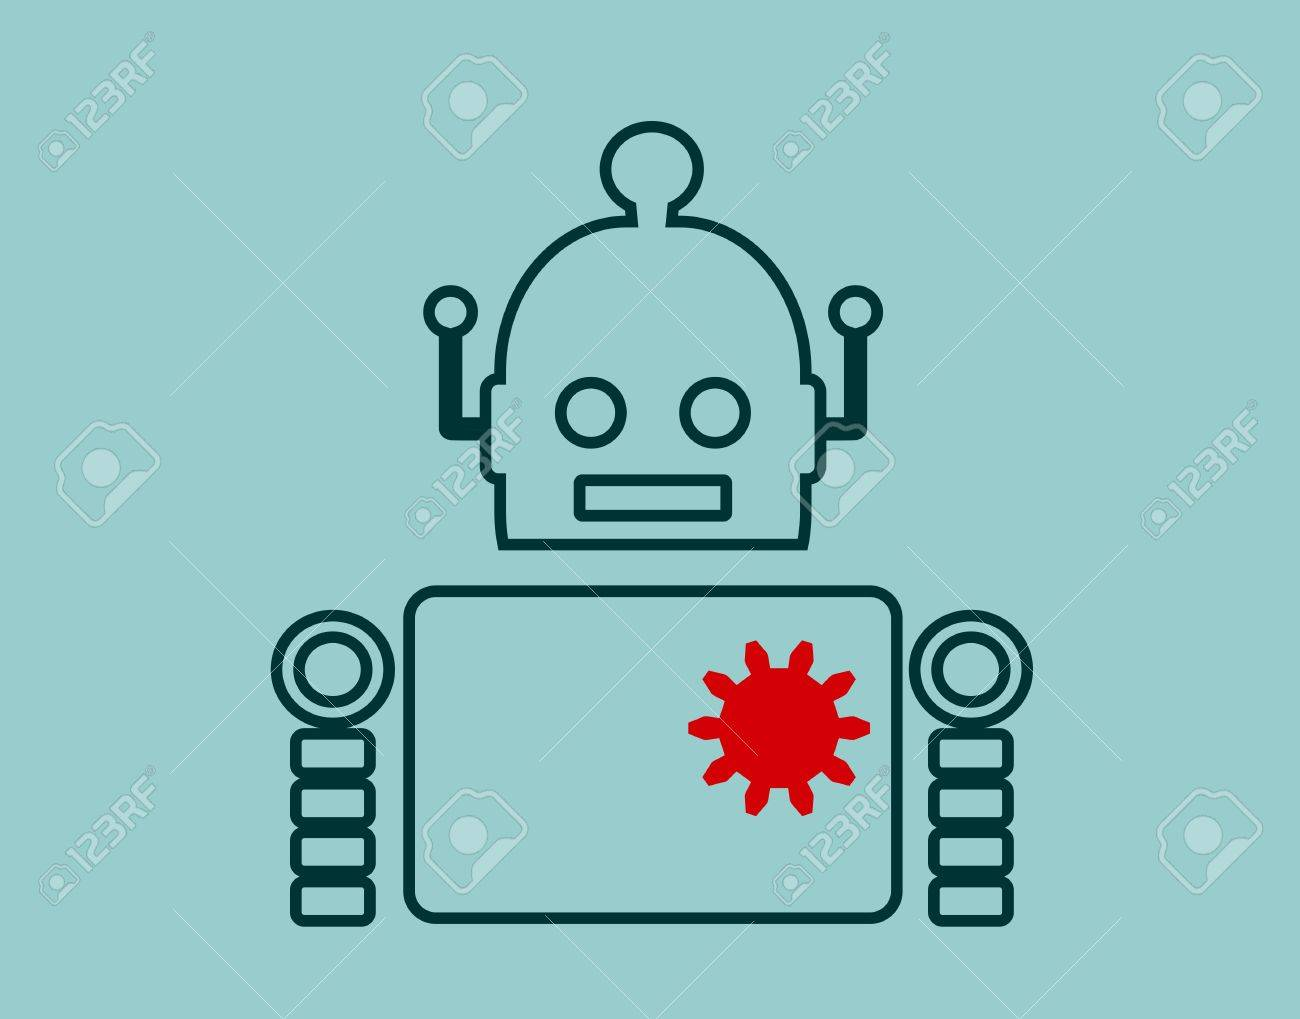 Cute Vintage Robot Robotics Industry Relative Image Outline